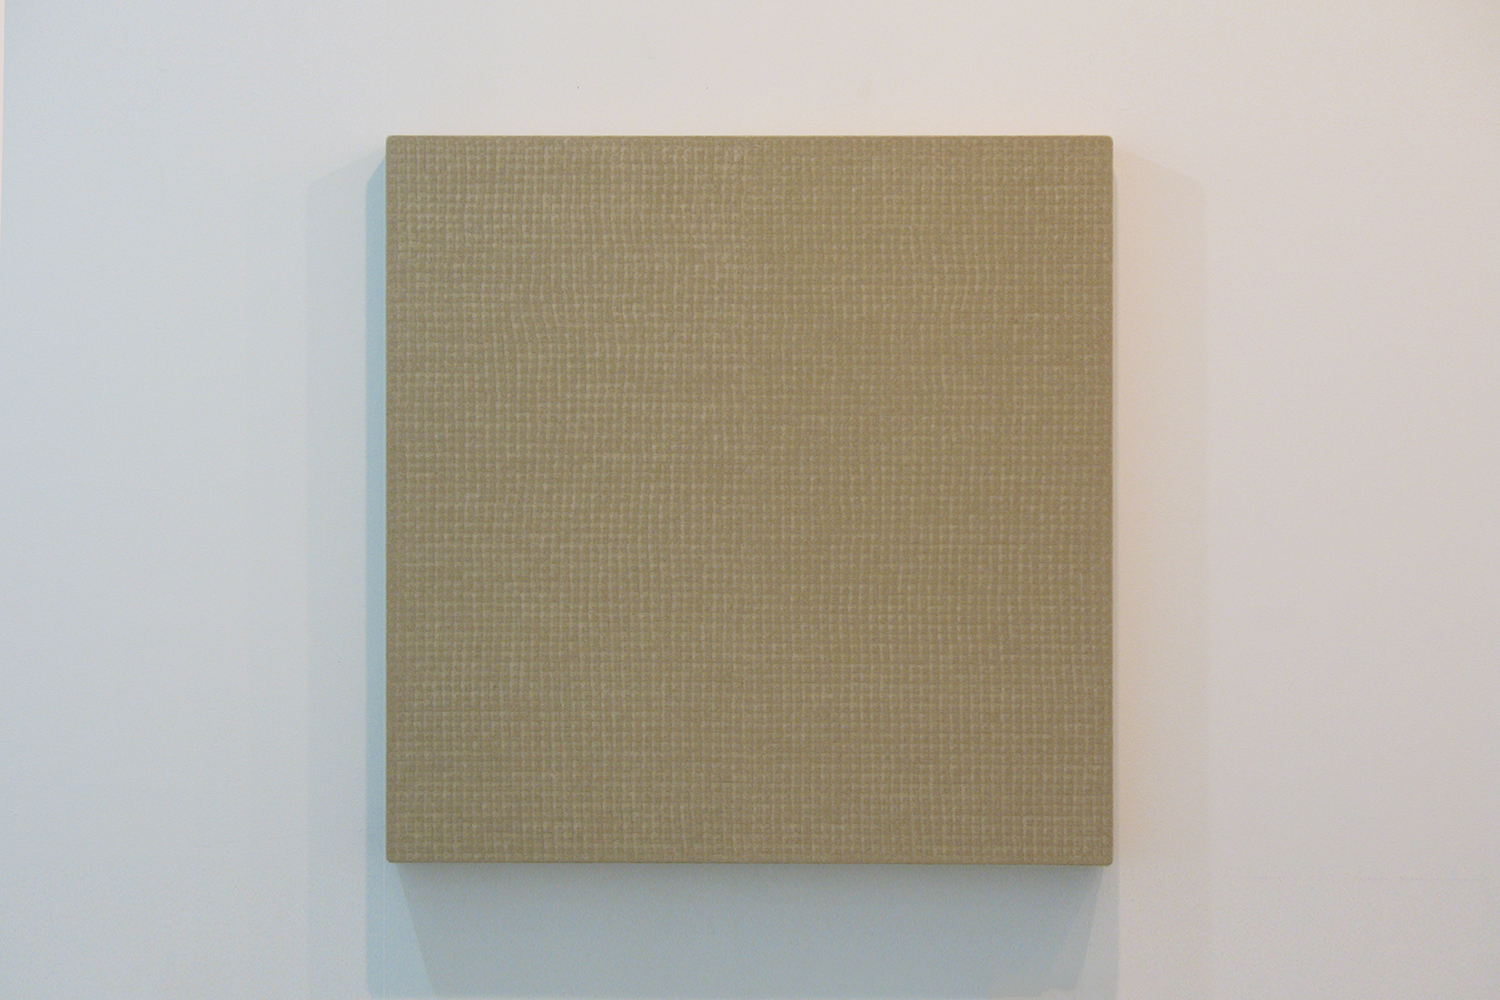 Hemp-square 08-03|Acylic on canvas|72.5 x 72.5 cm|2008